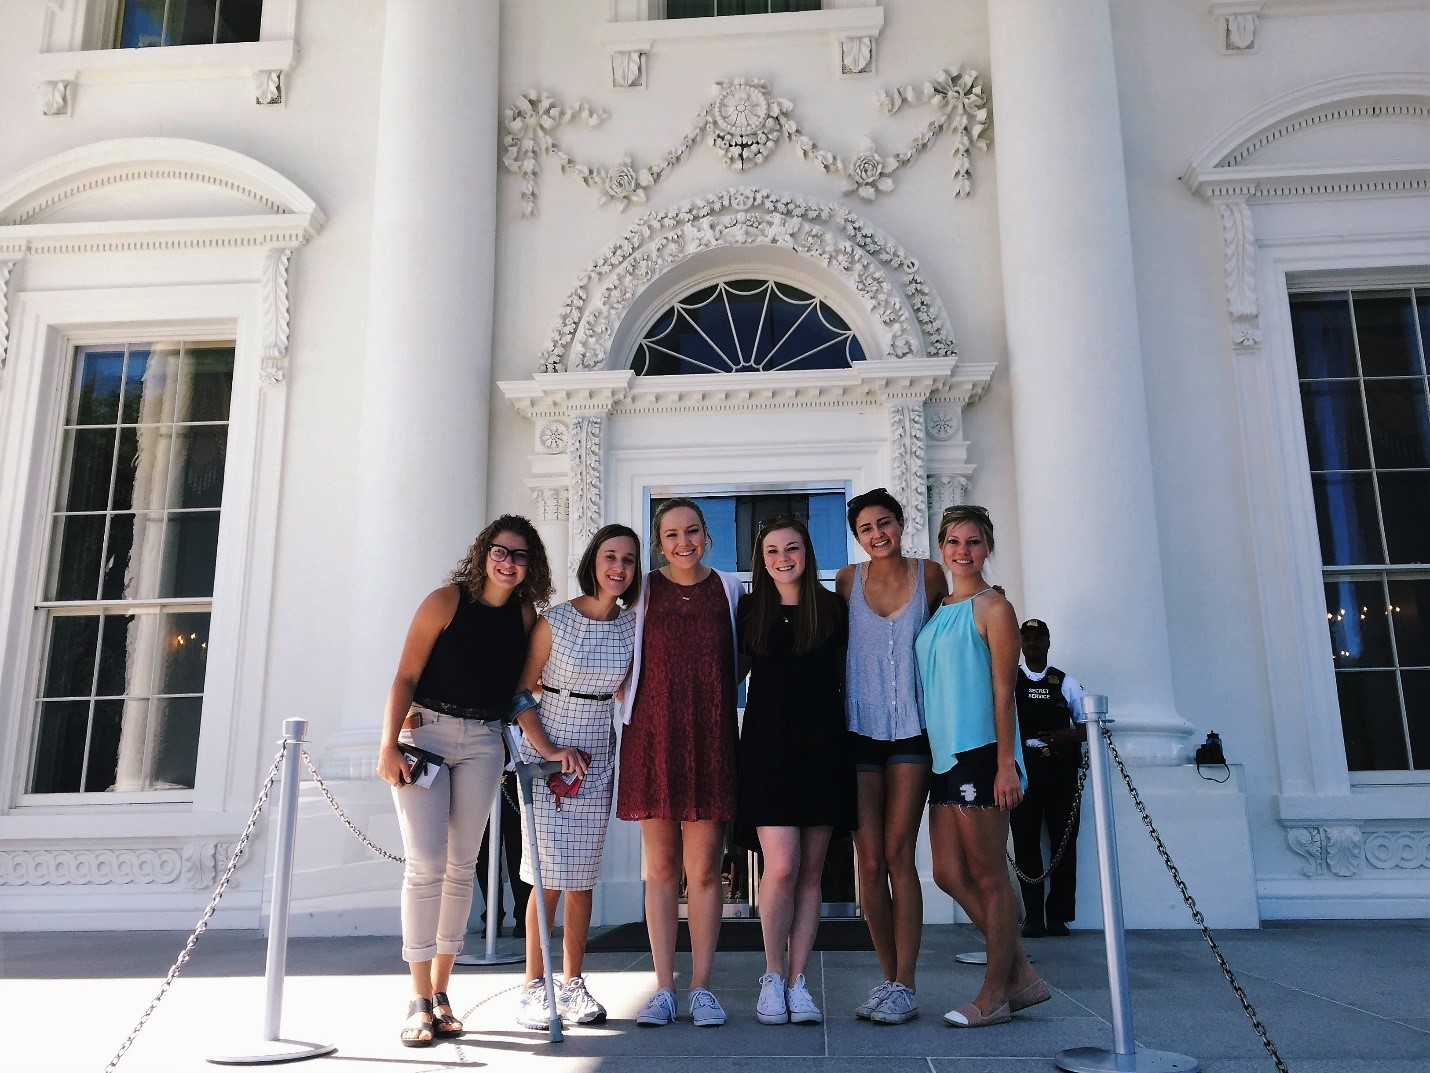 My roommates and I got to tour the White House